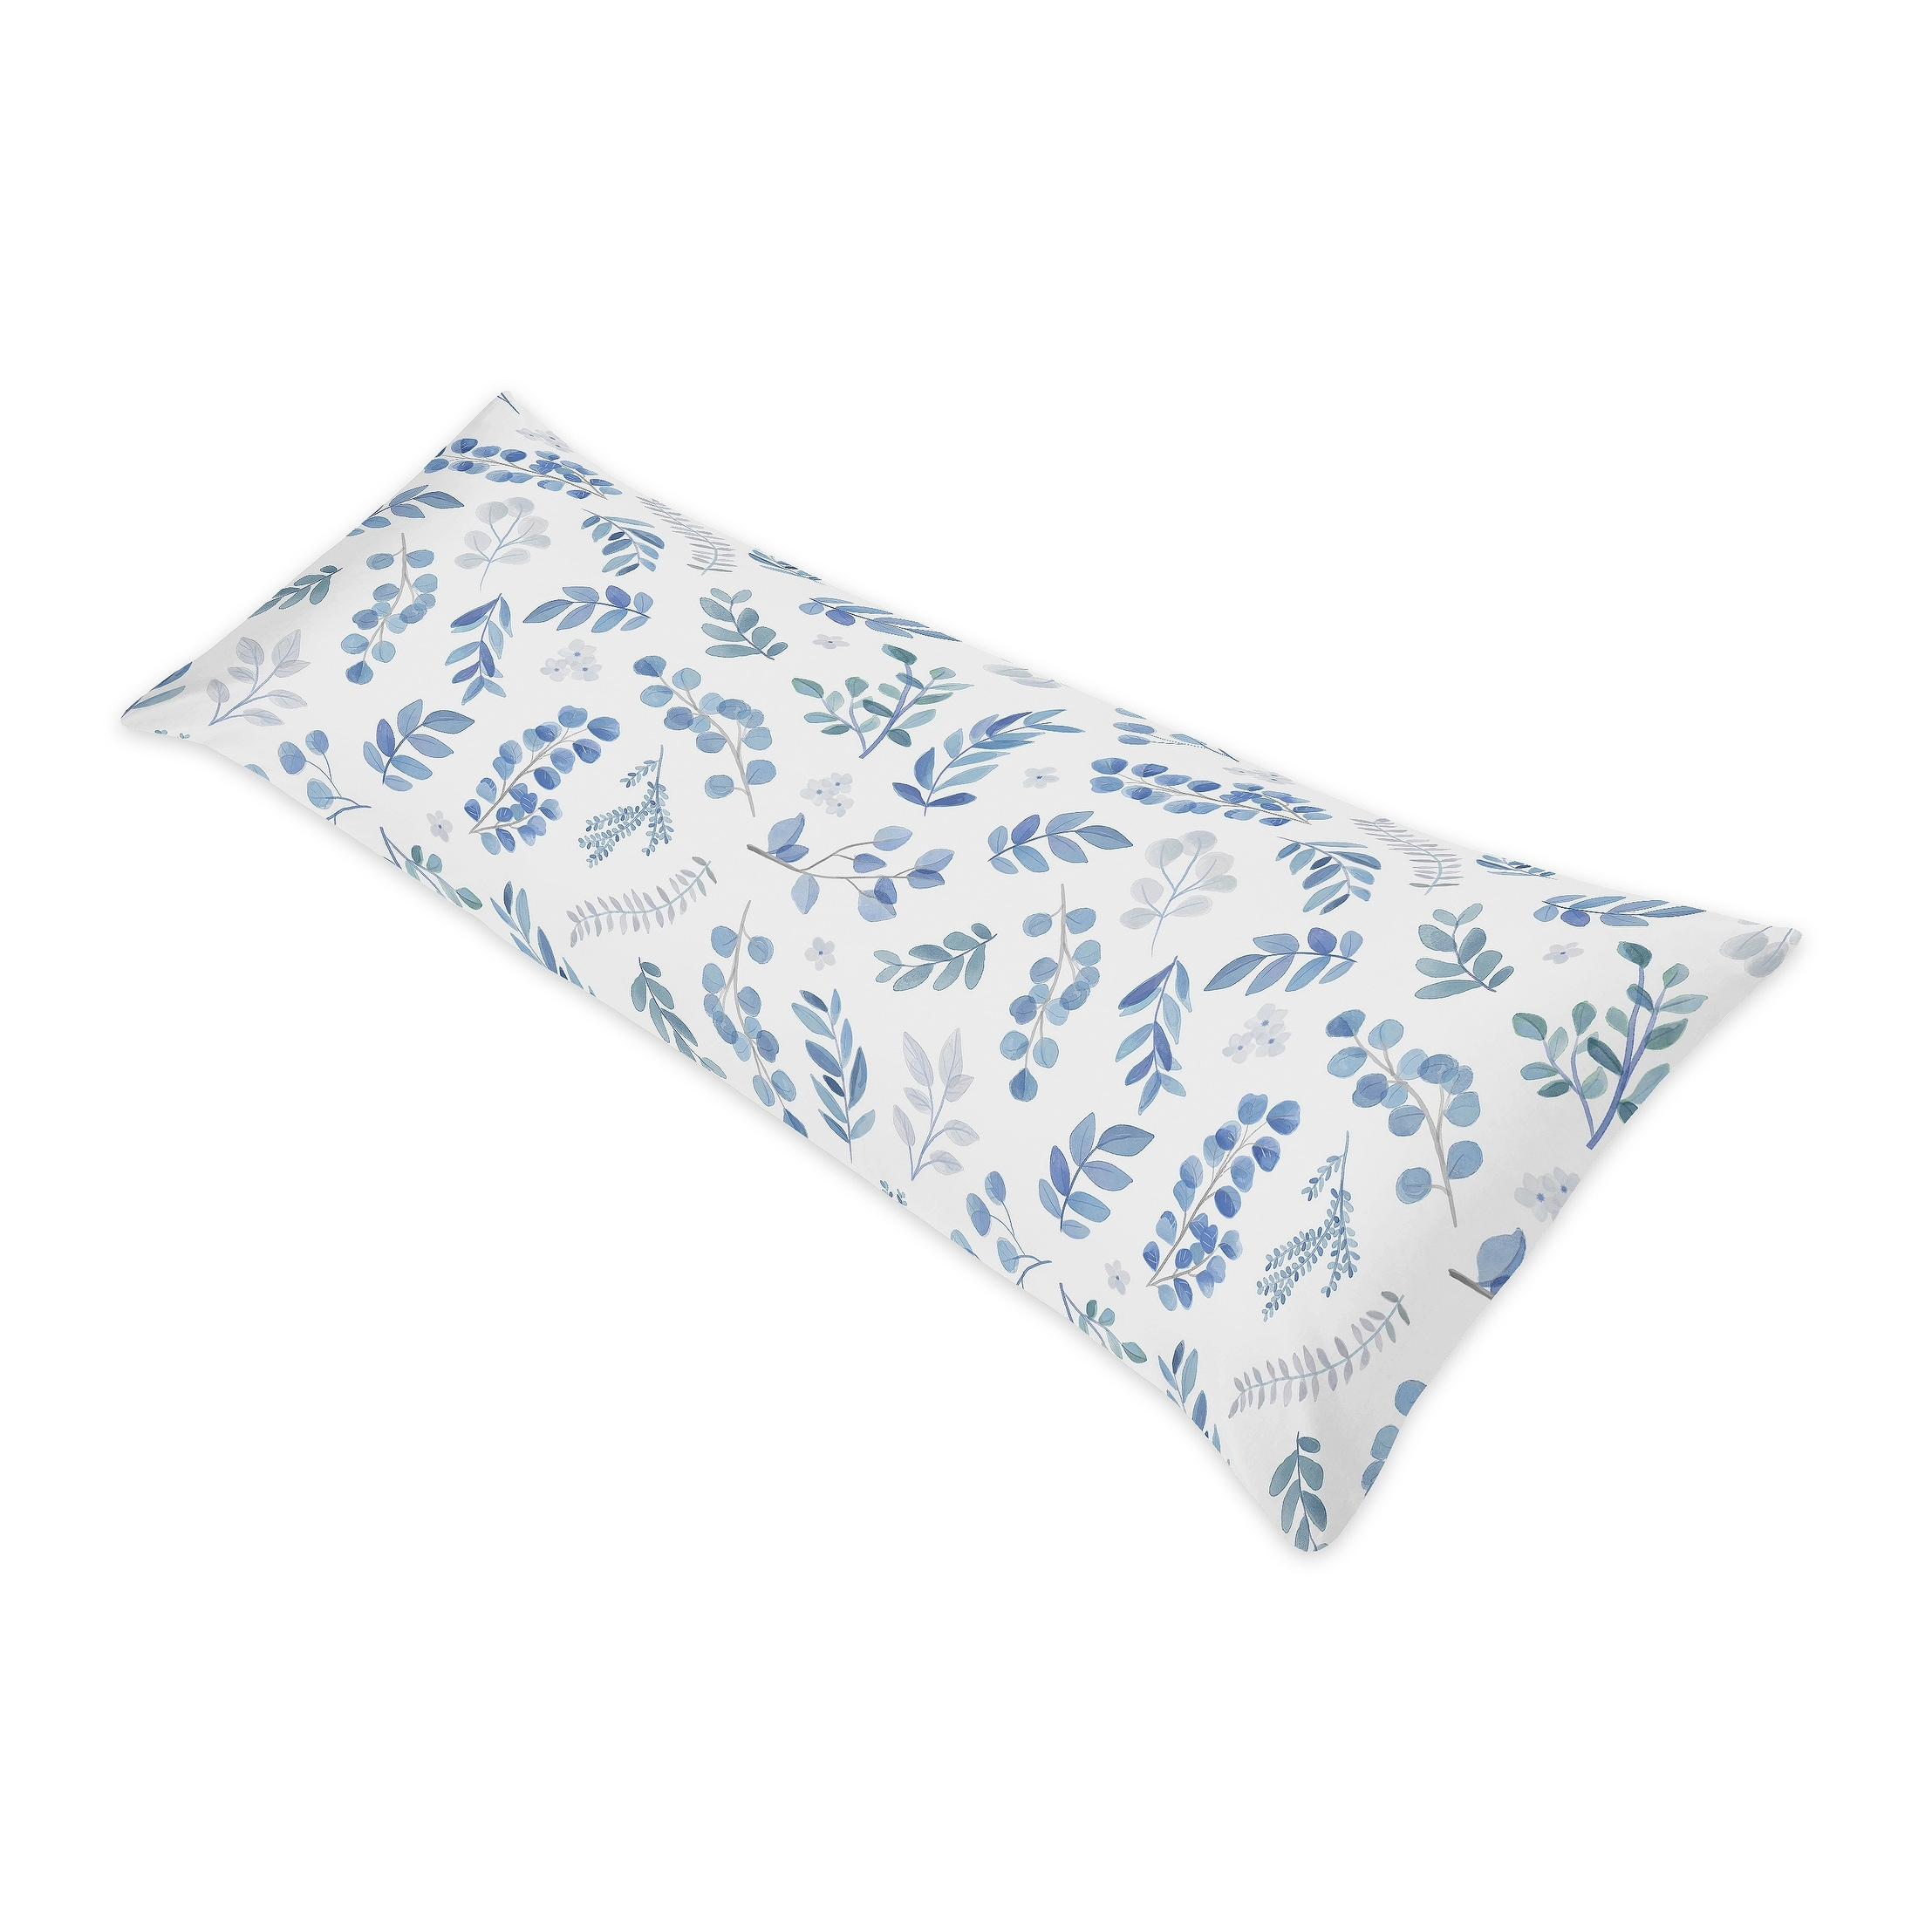 floral leaf body pillow case pillow not included blue grey white boho watercolor botanical flower woodland tropical garden